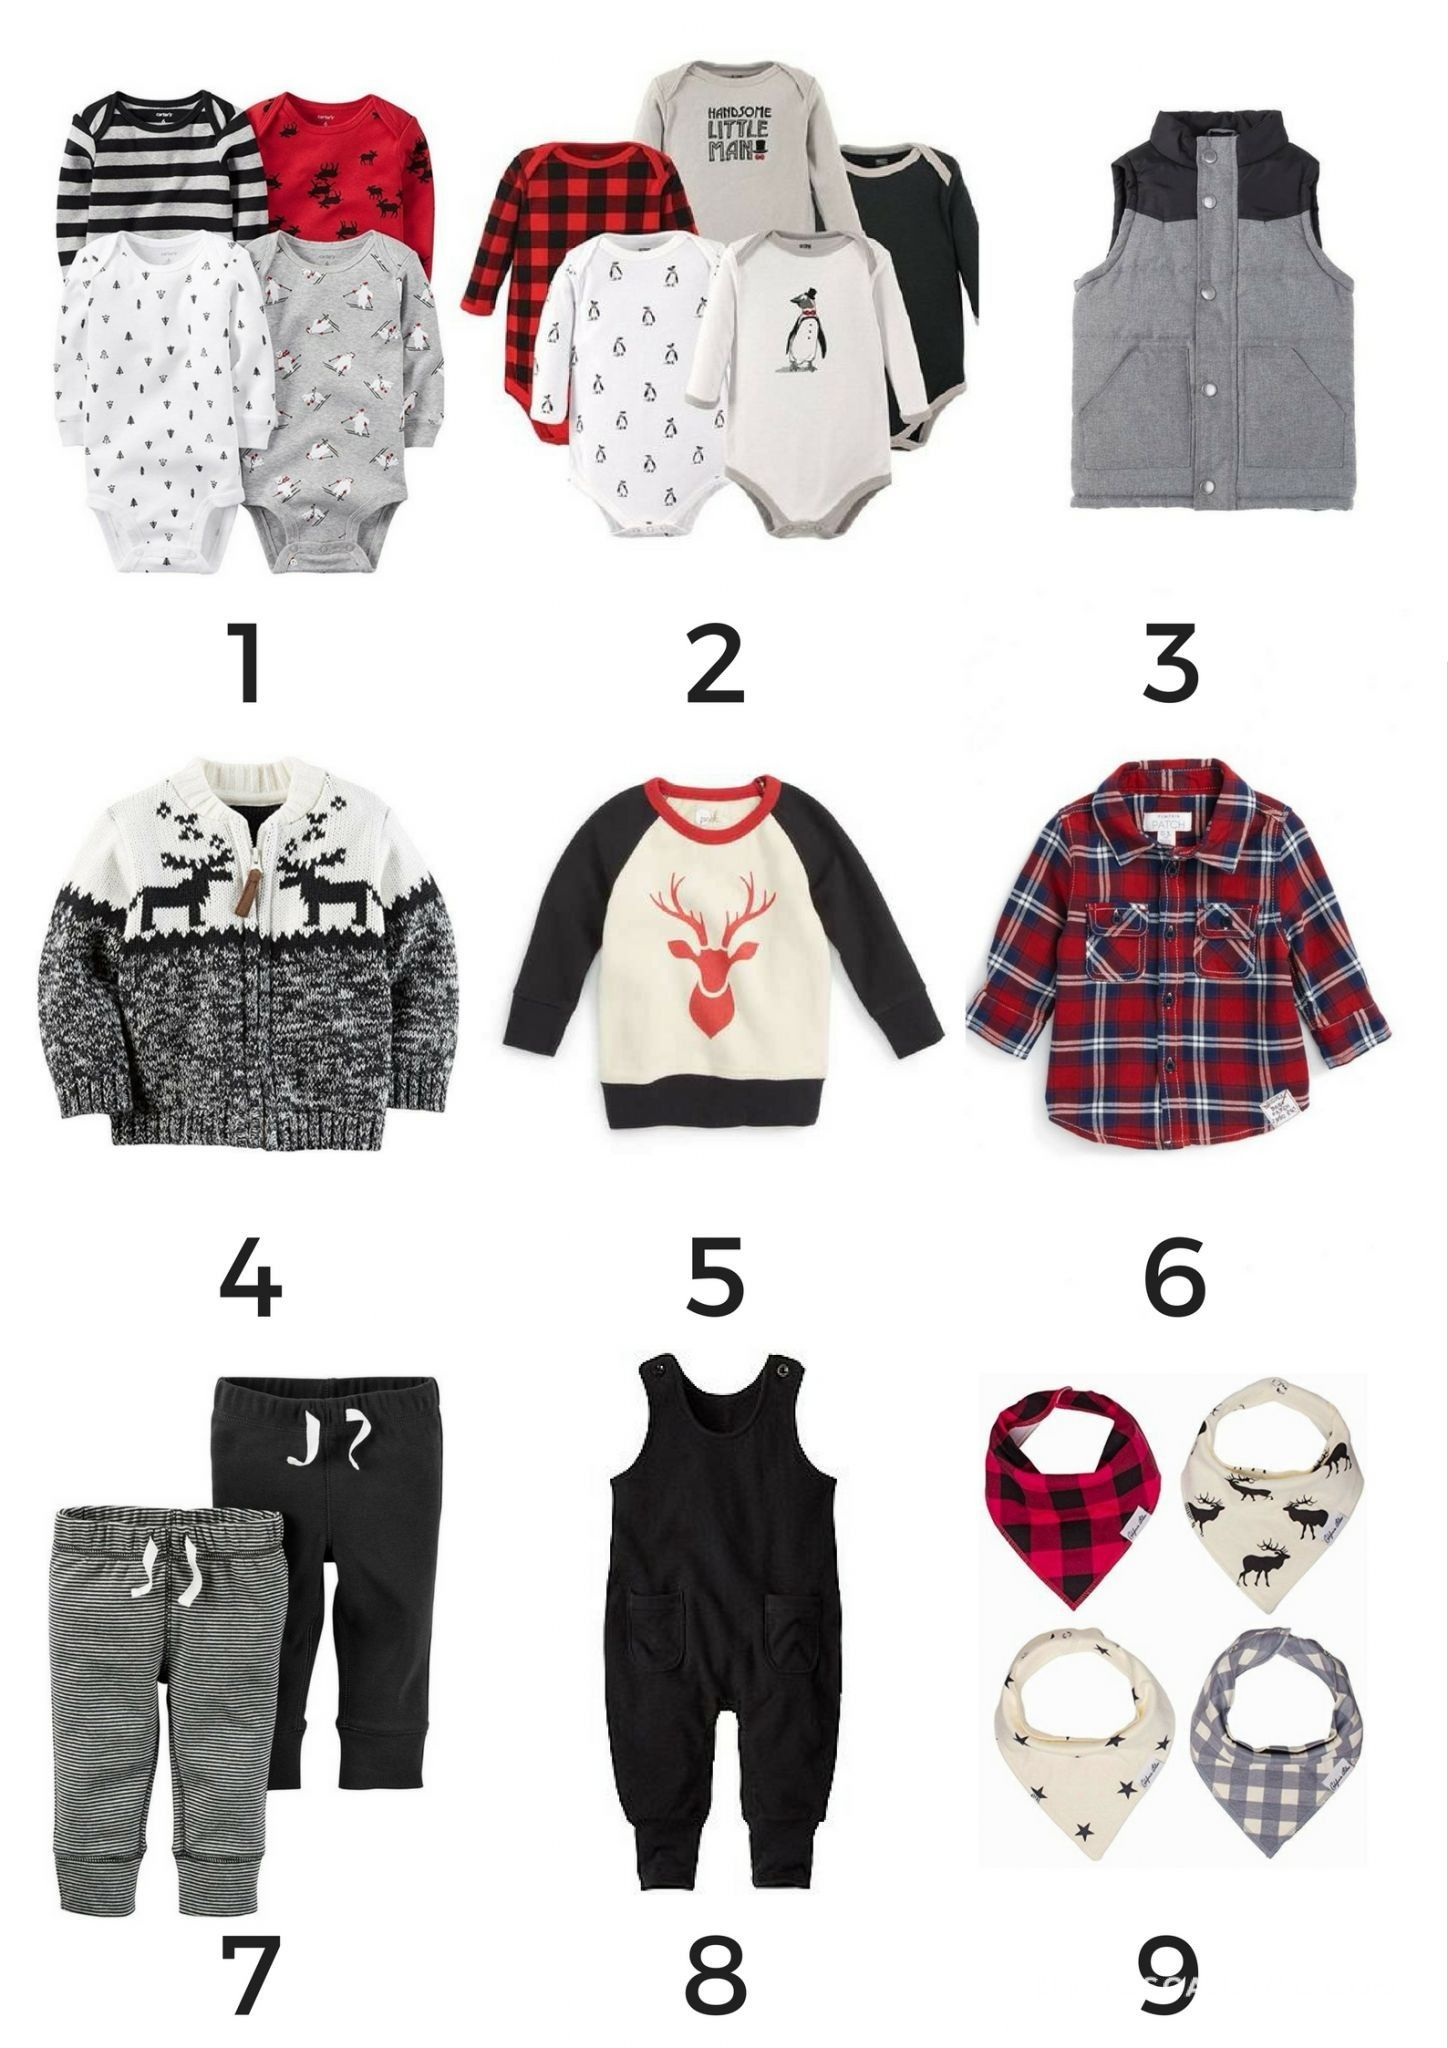 e8b35340fa41d How to Make a Capsule Wardrobe for Your Baby | Boys Outfit Ideas ...